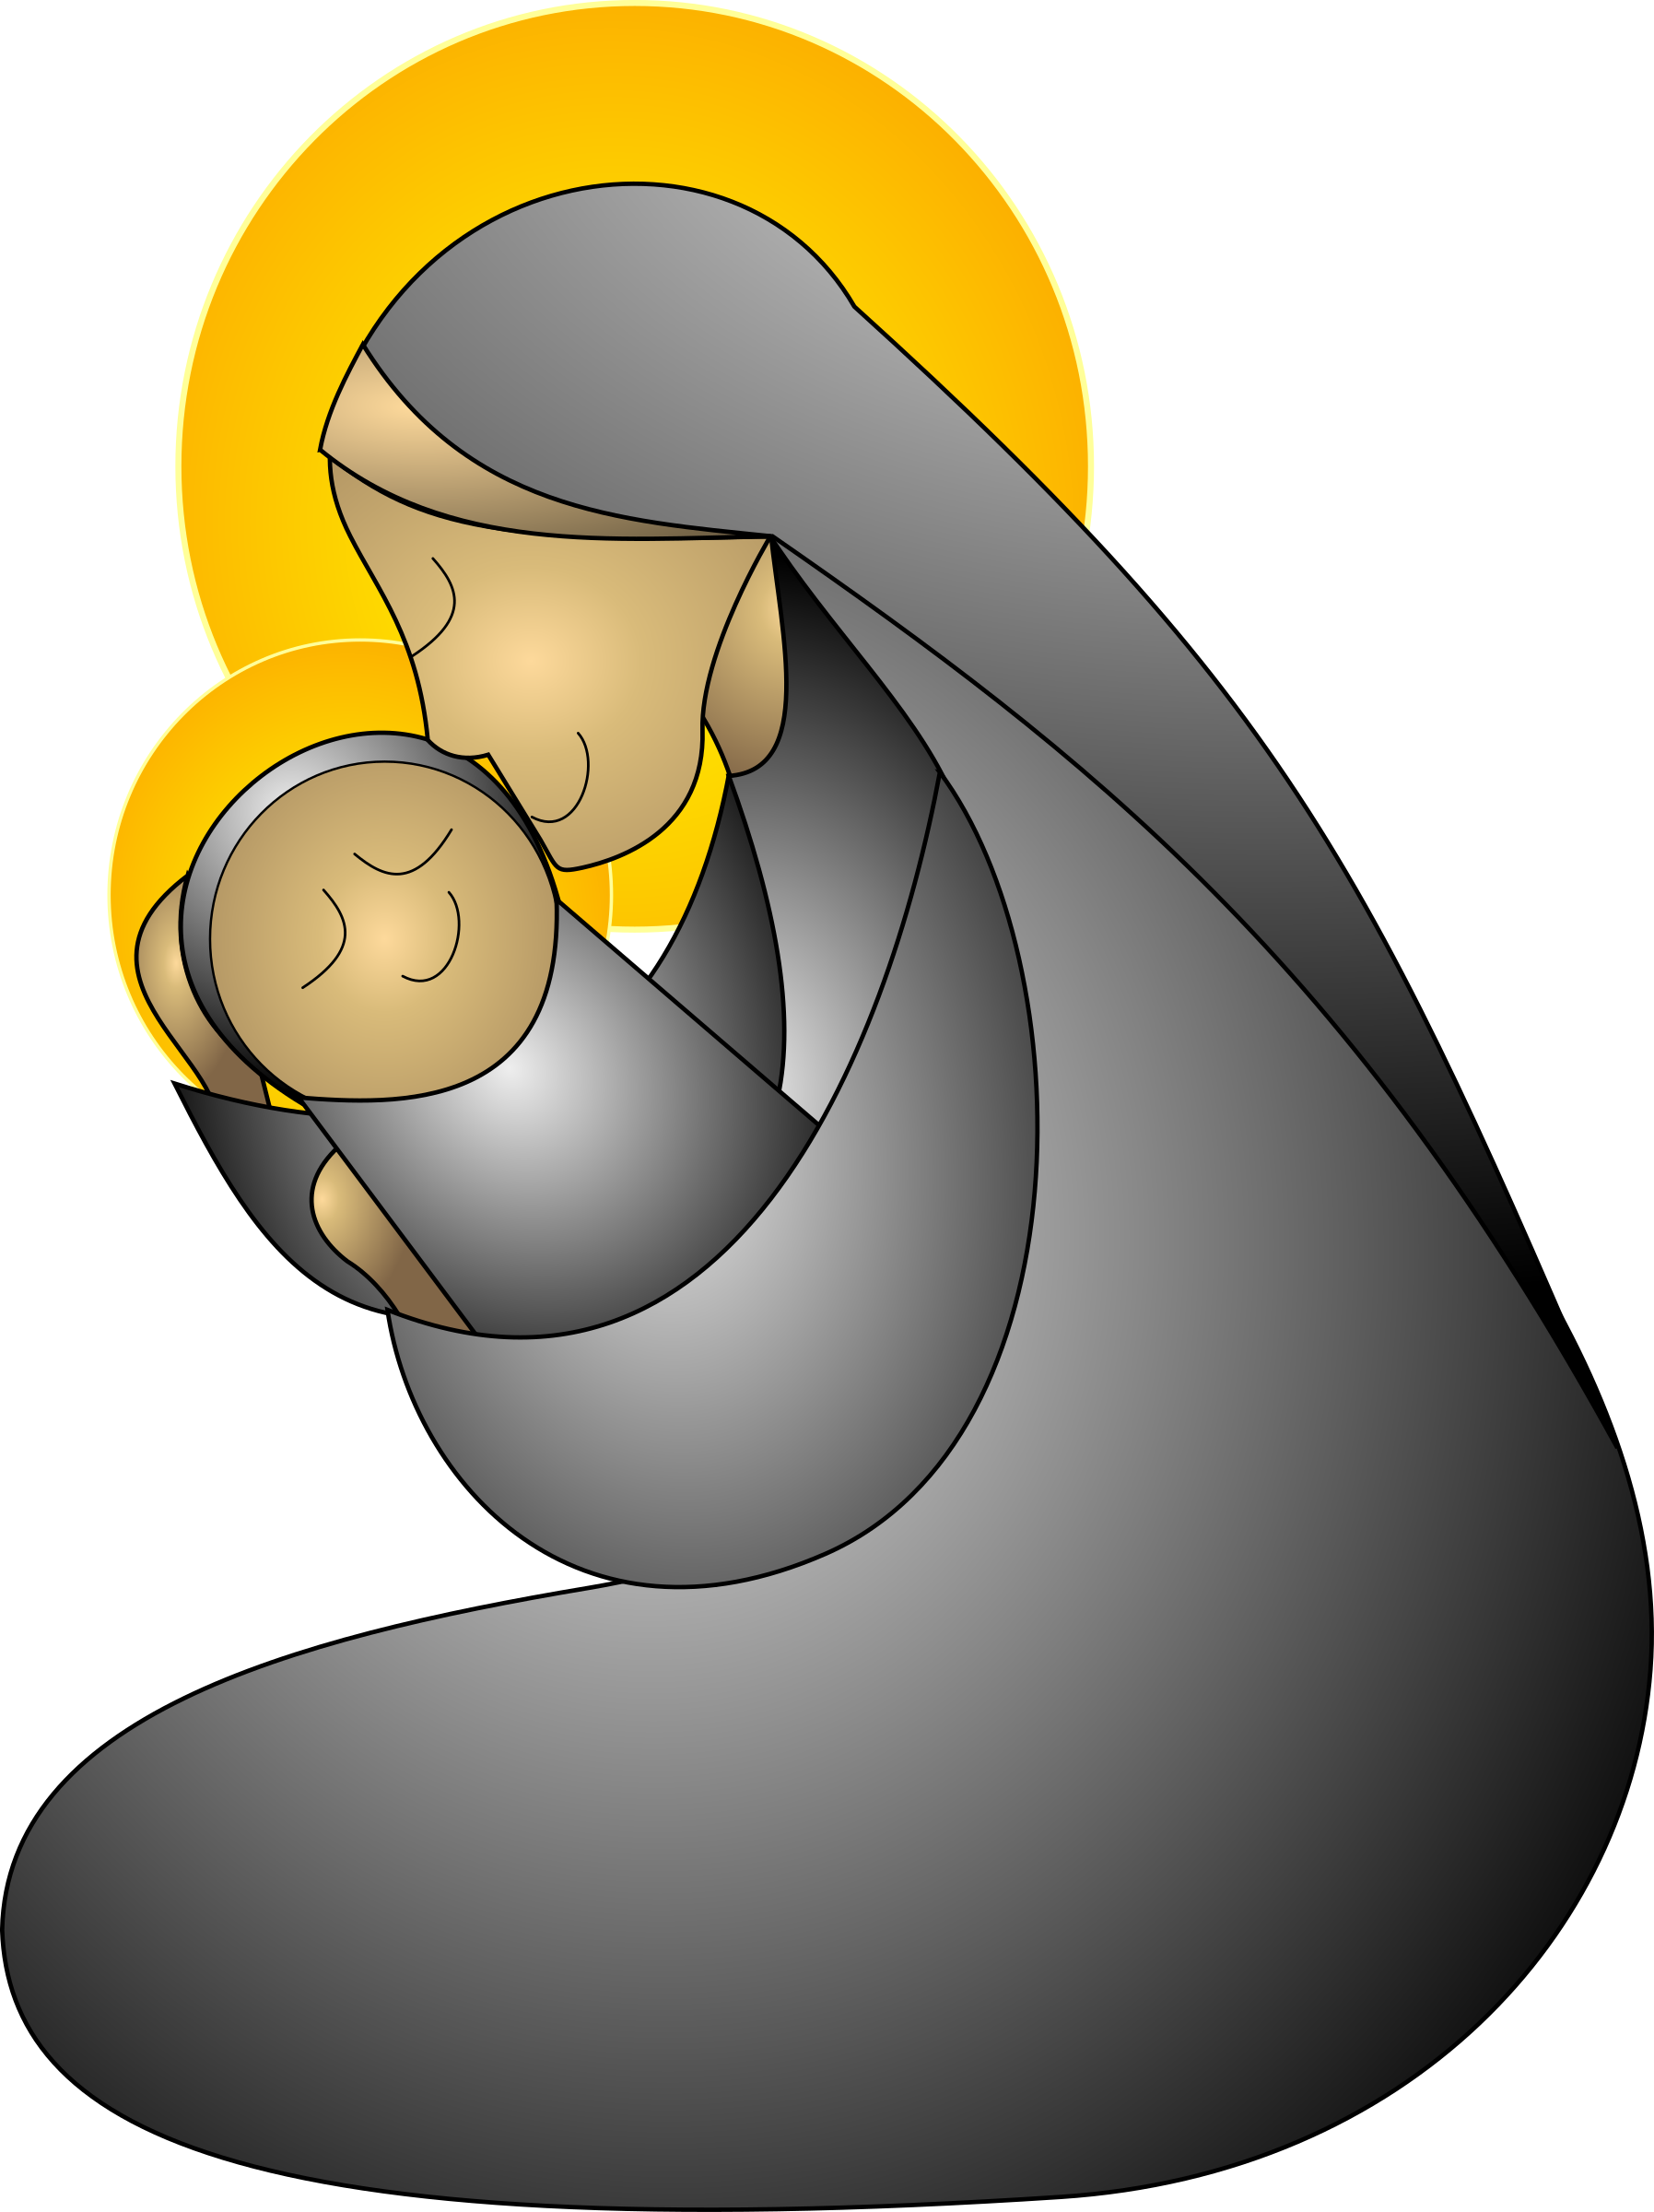 Second group mother baby. Hugging clipart motherr